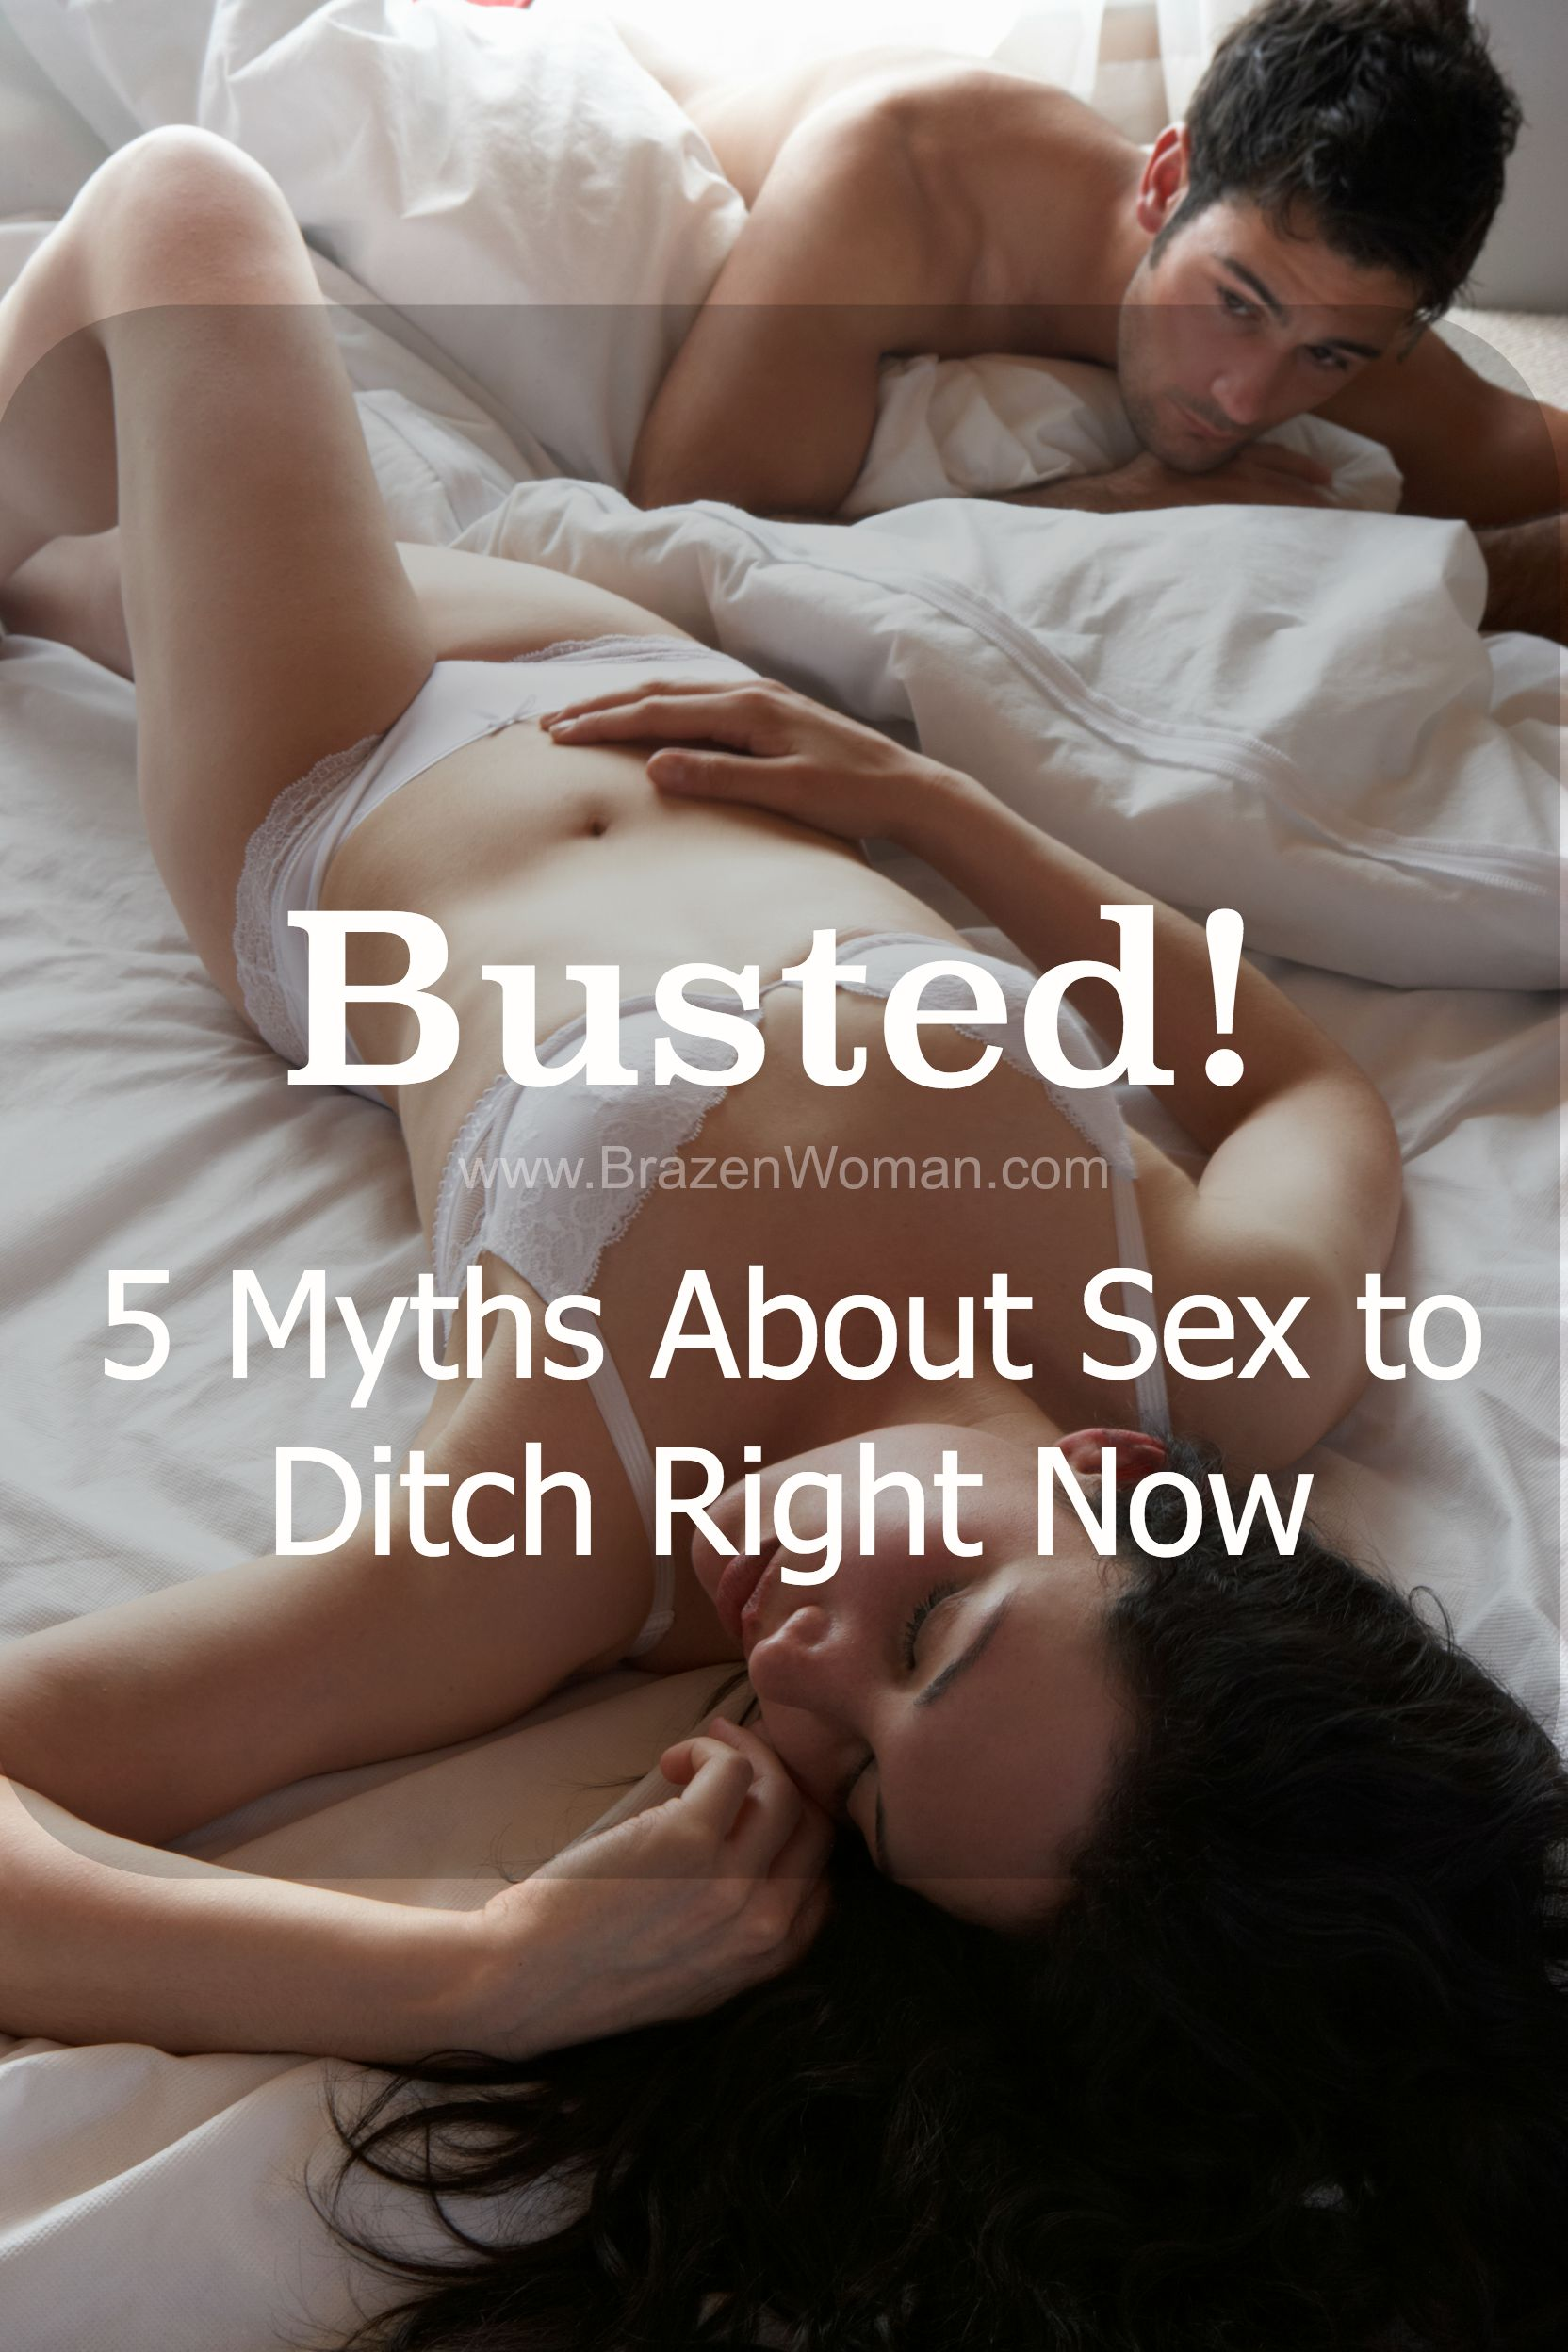 Busted 5 Myths About Sex You Need to Stop Believing